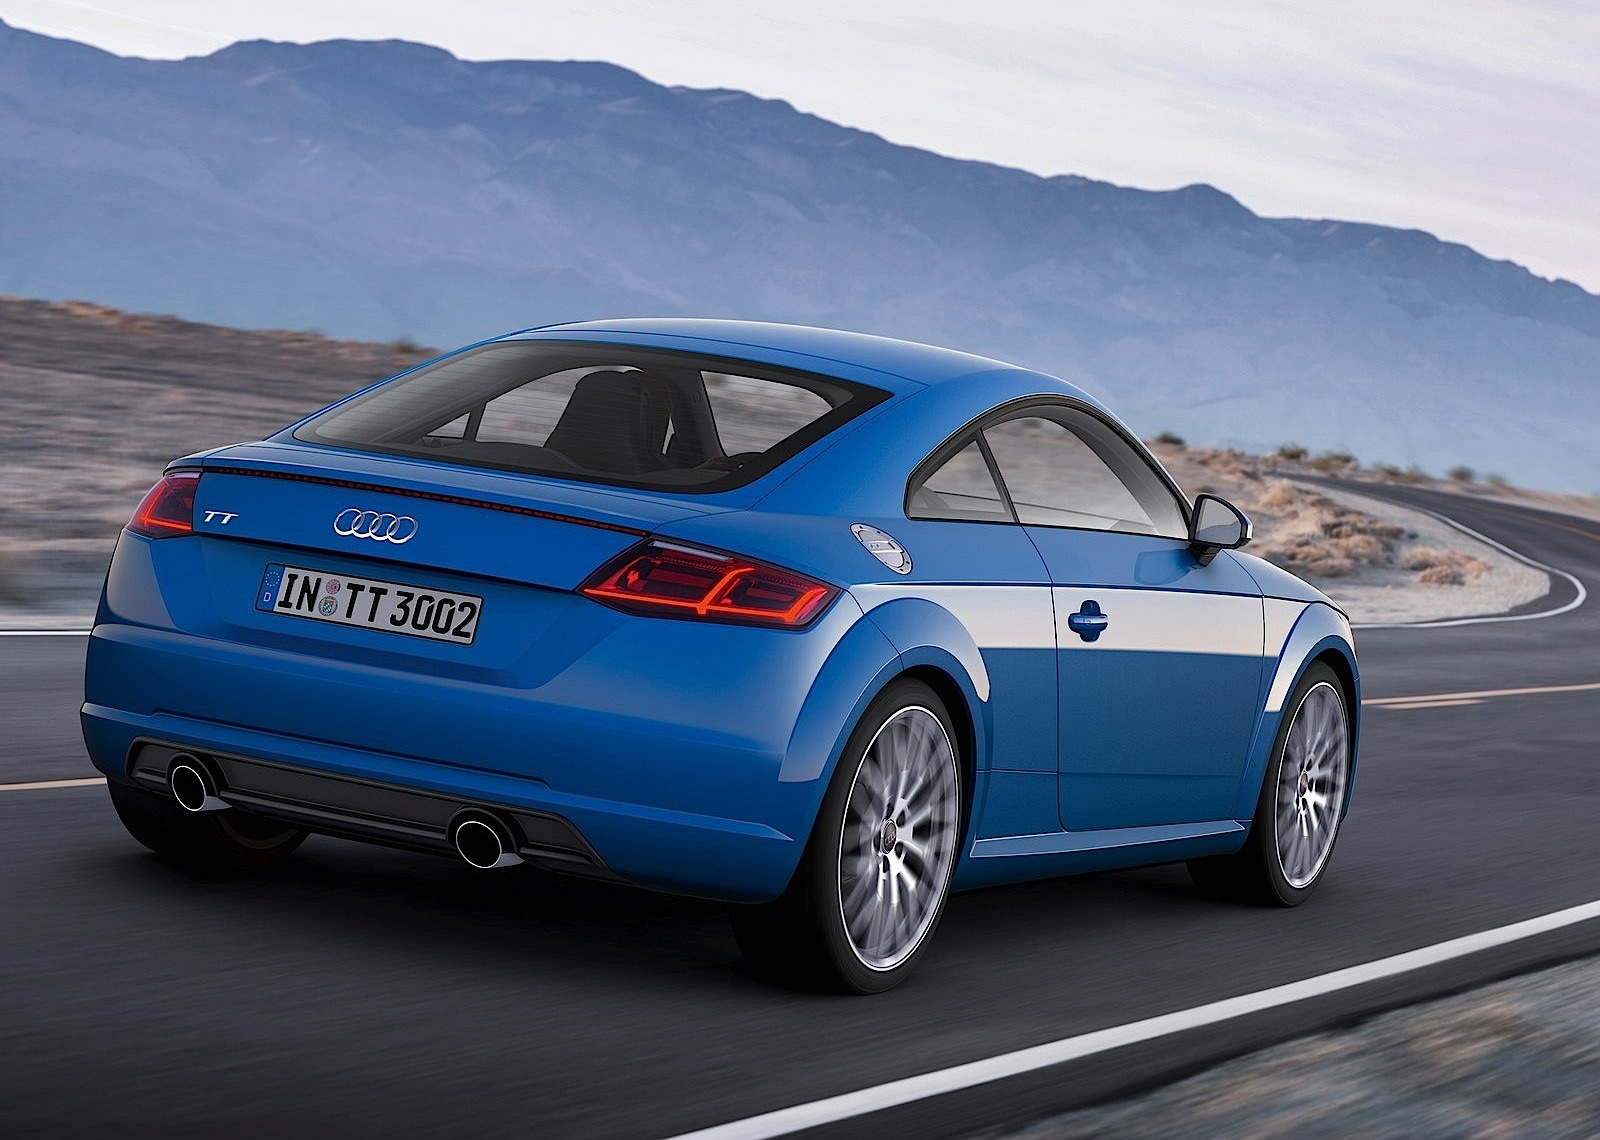 audi tt specs 2014 2015 2016 2017 2018 autoevolution. Black Bedroom Furniture Sets. Home Design Ideas